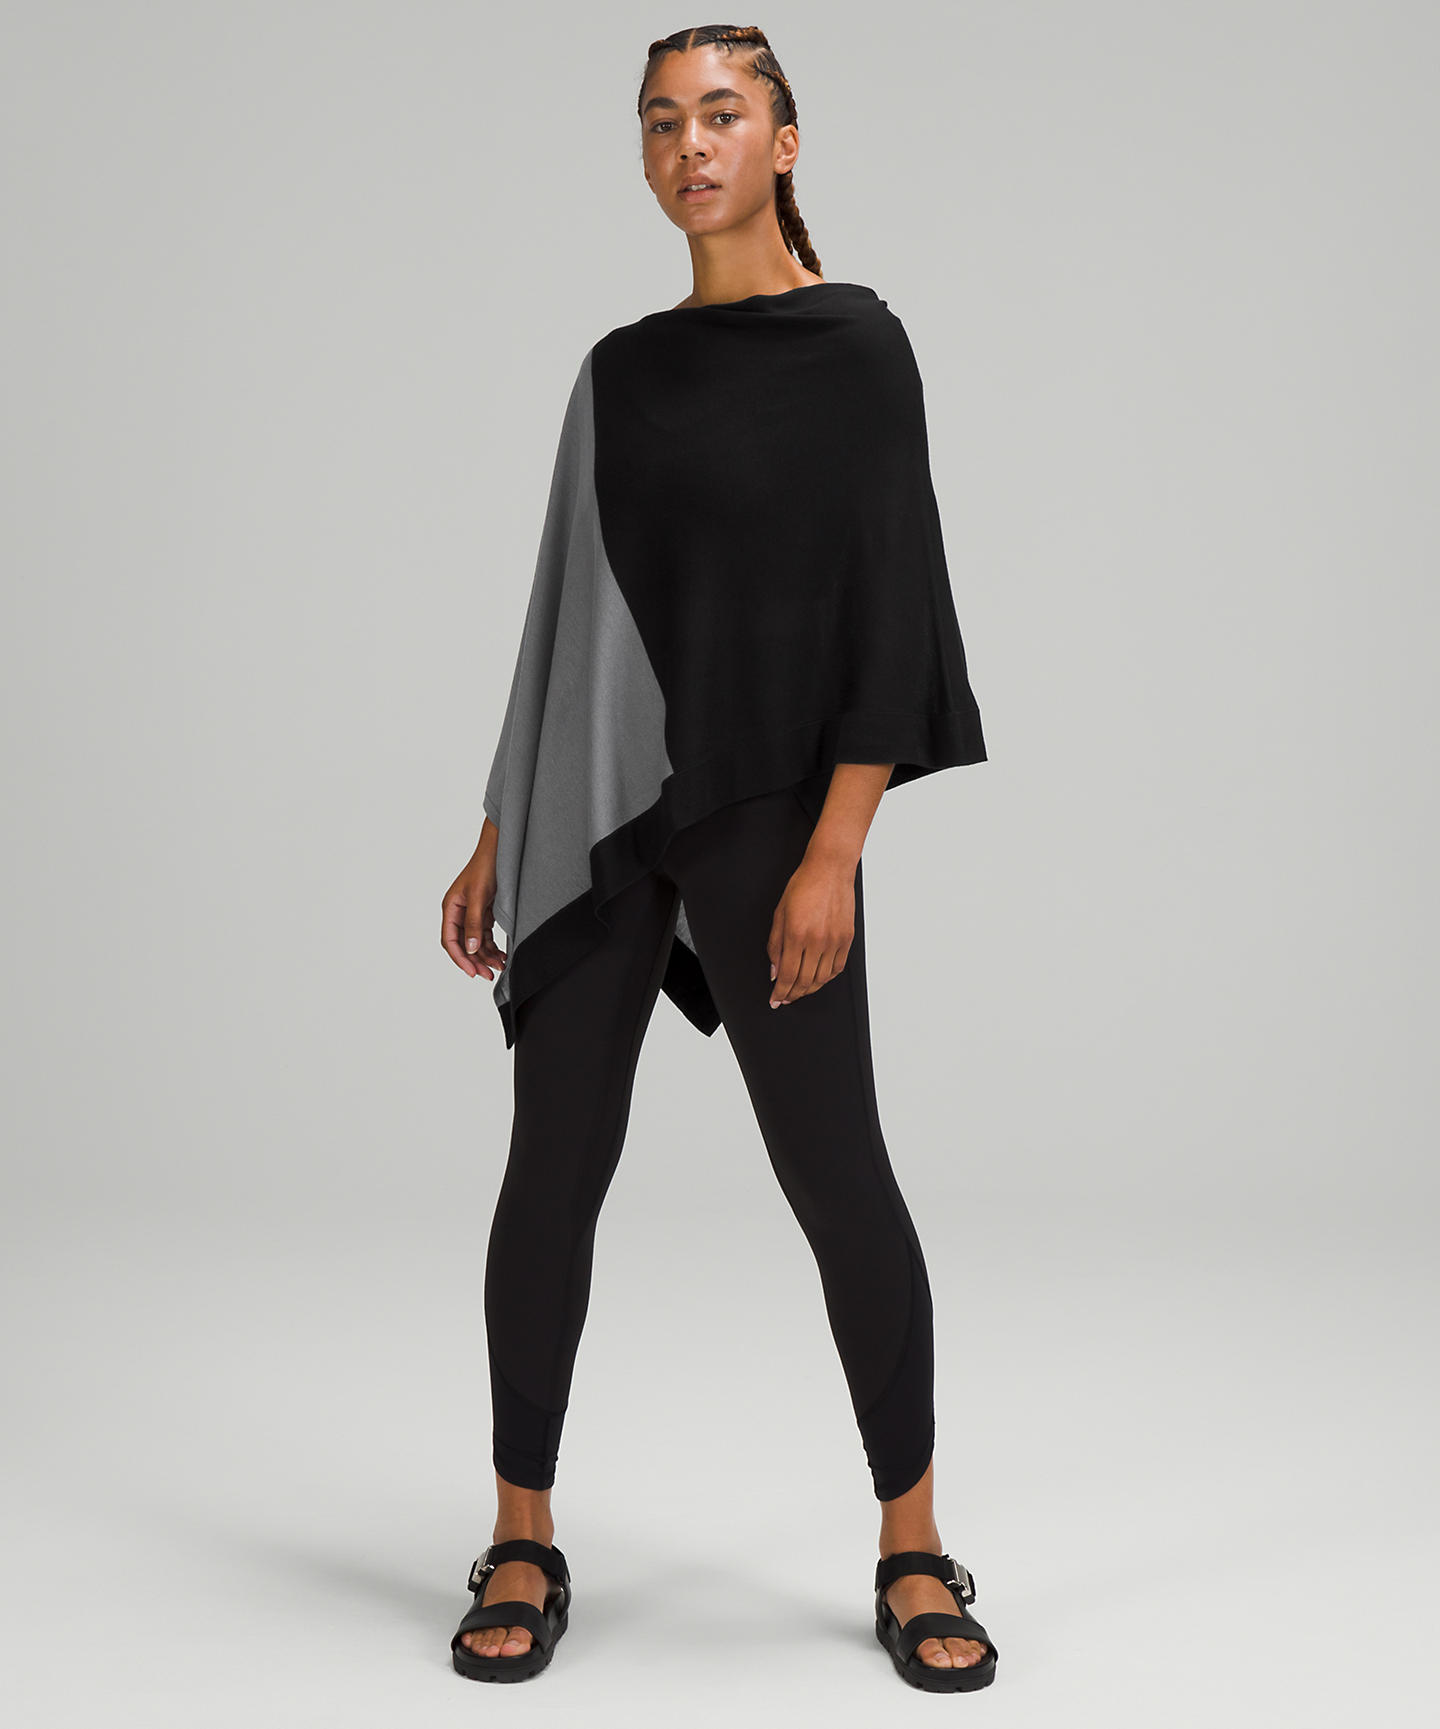 Lululemon: New Styles added to sale (7/22)